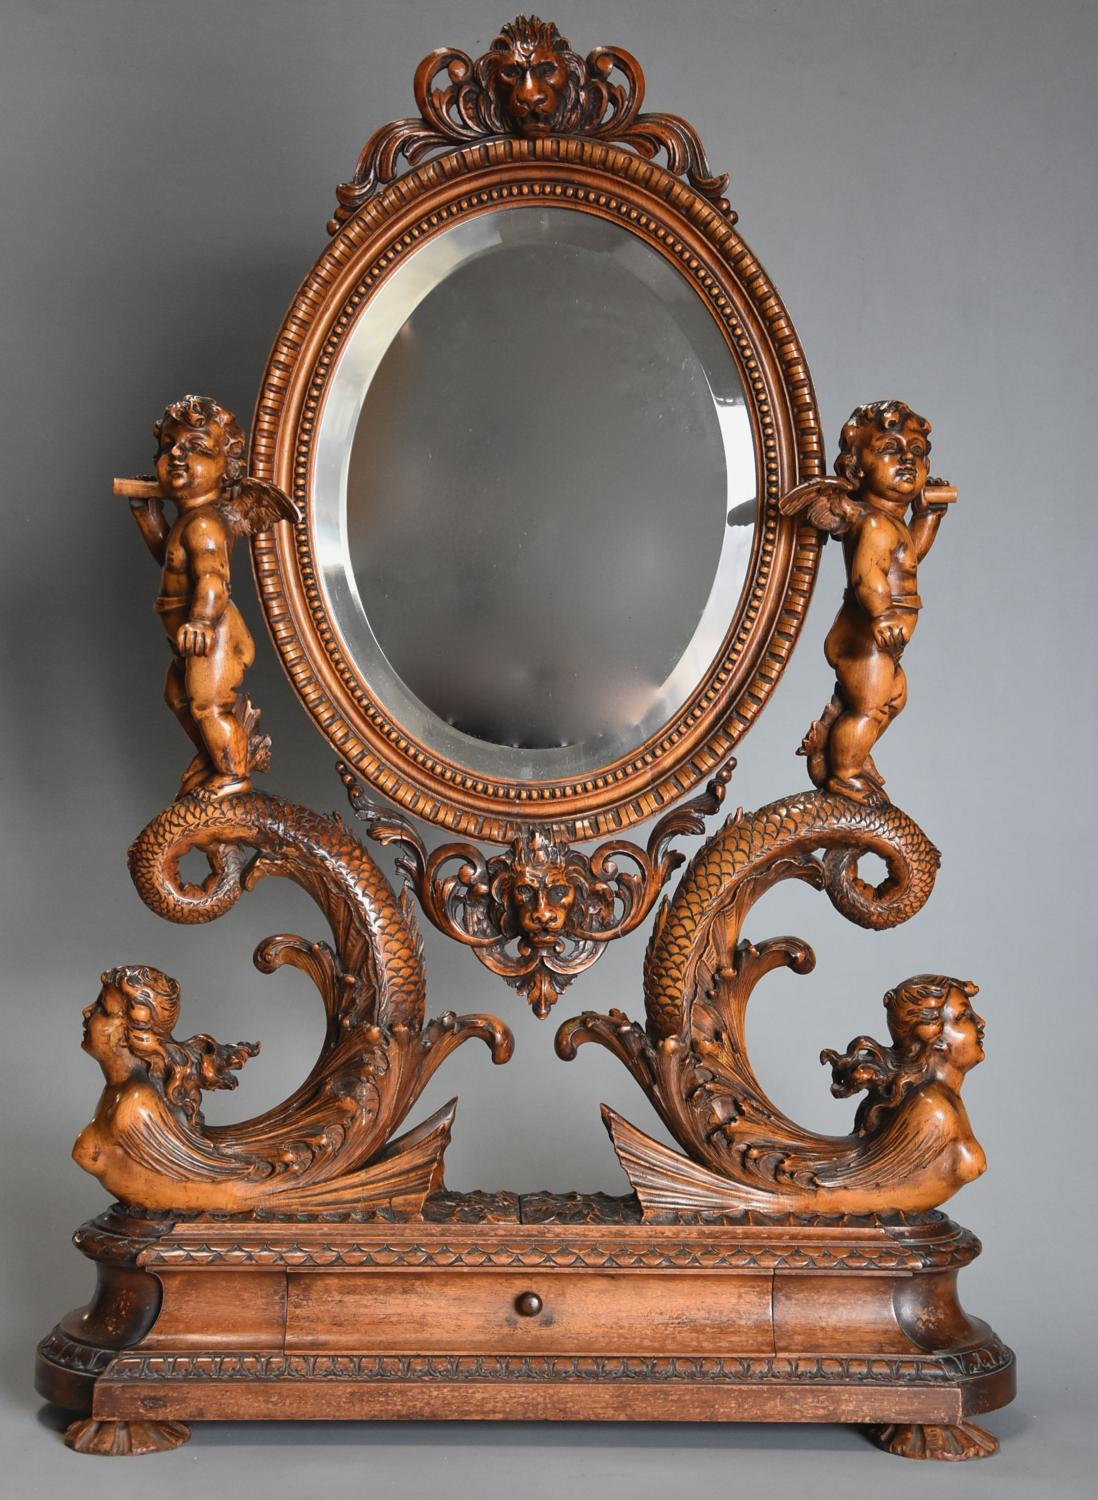 Exhibition quality superbly carved 19thc Italian limewood table mirror